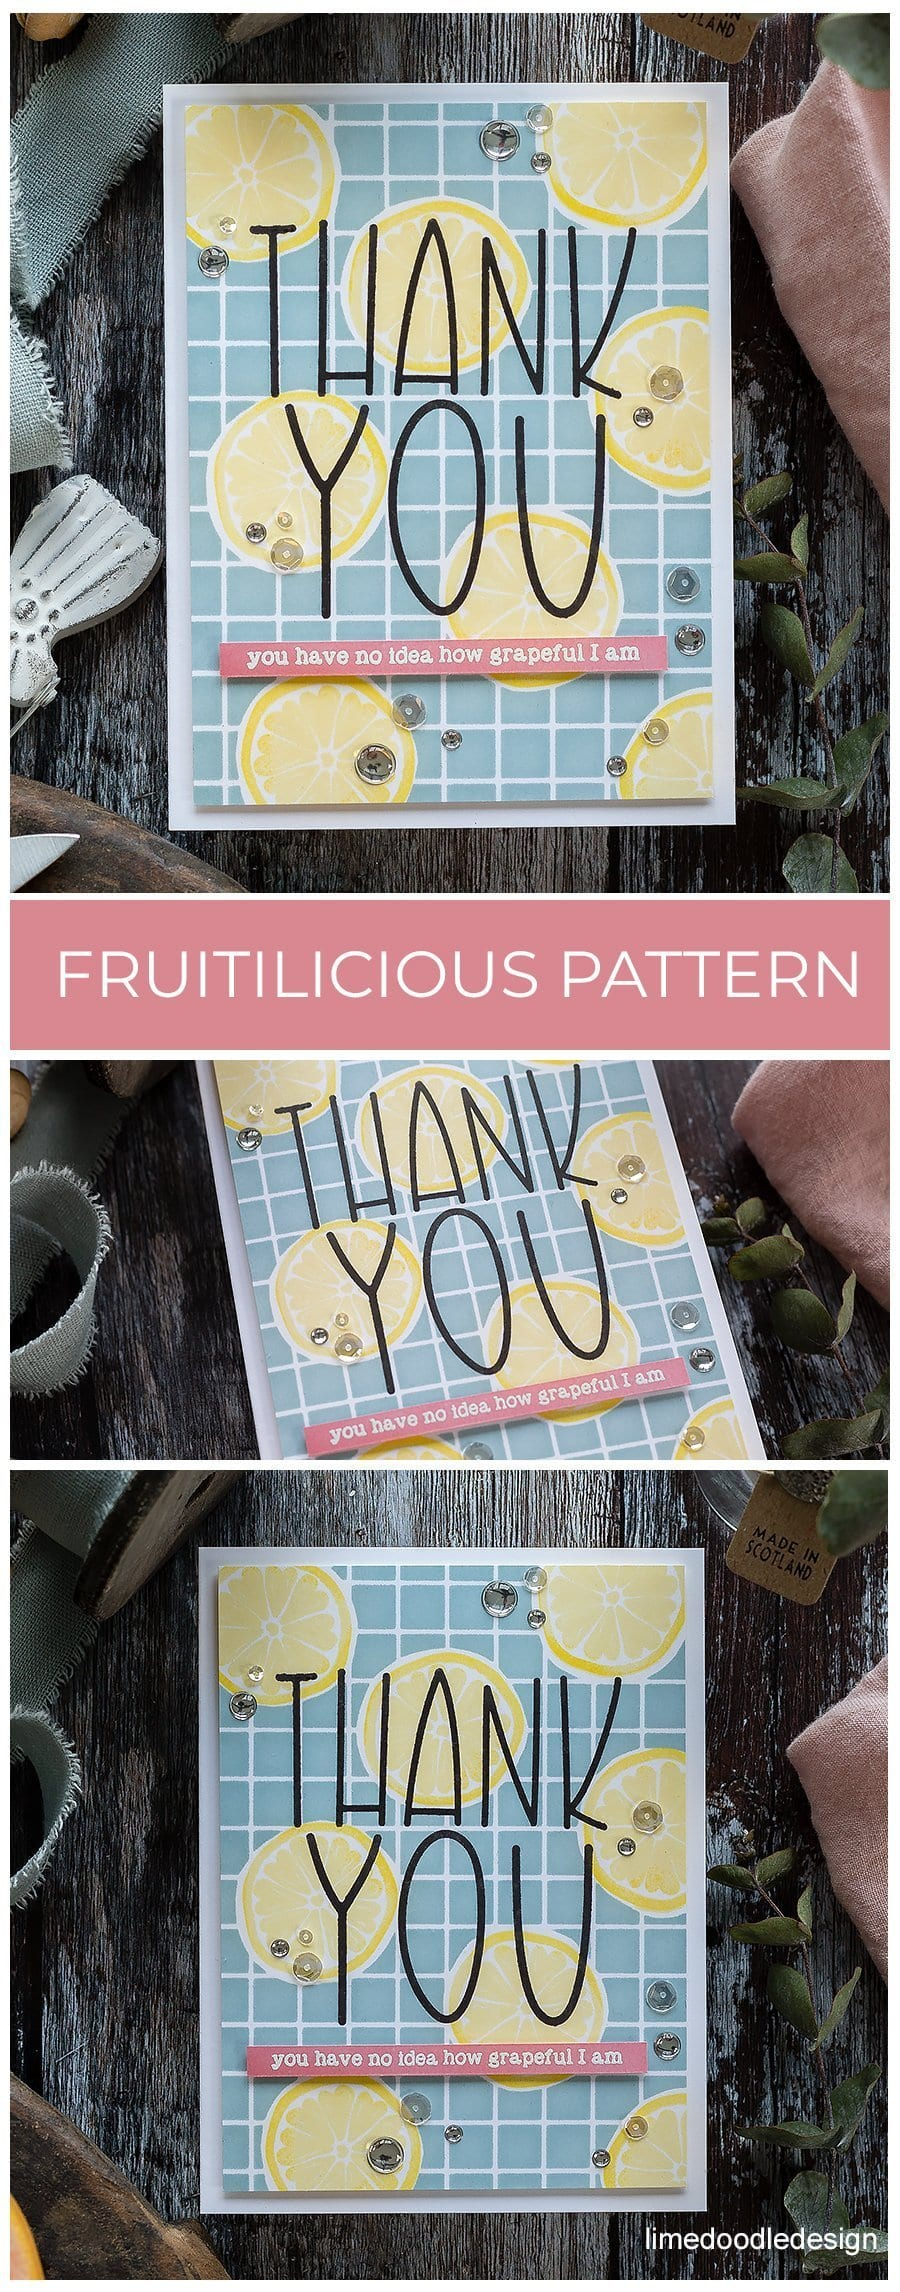 Video - fruitilicious background pattern thank you handmade card by Debby Hughes using supplies from Simon Says Stamp. Find out more here: https://limedoodledesign.com/2019/01/video-fruitilicious-background-pattern/